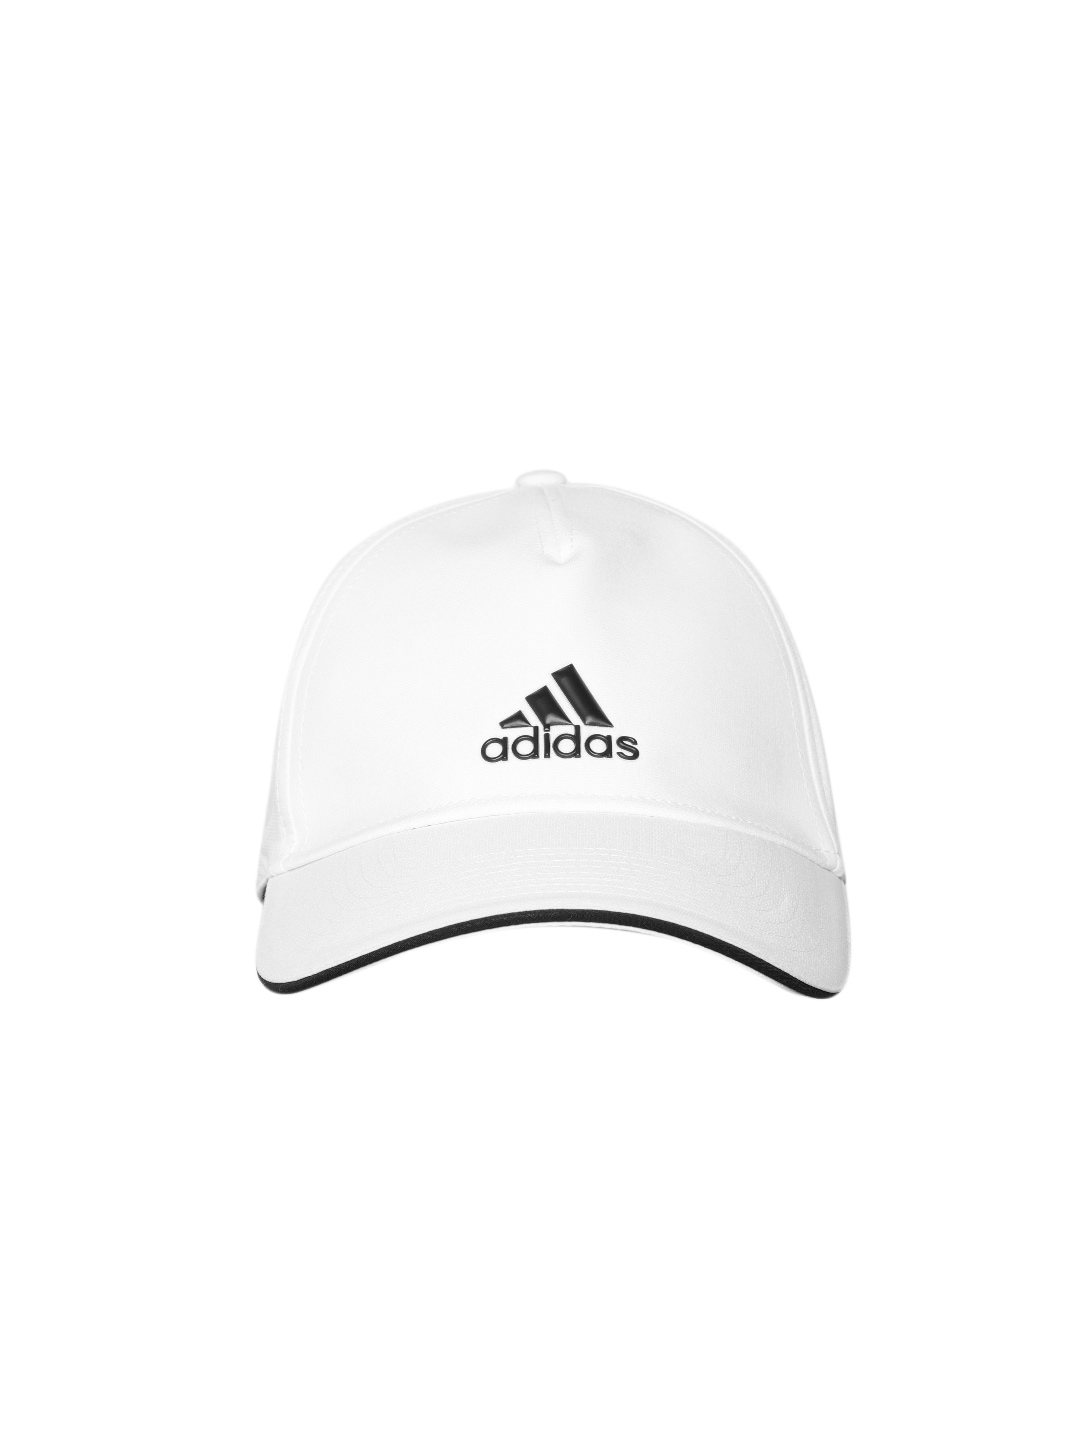 748ffc7dfb5 Adidas Cap - Buy Adidas Caps for Women   Girls Online